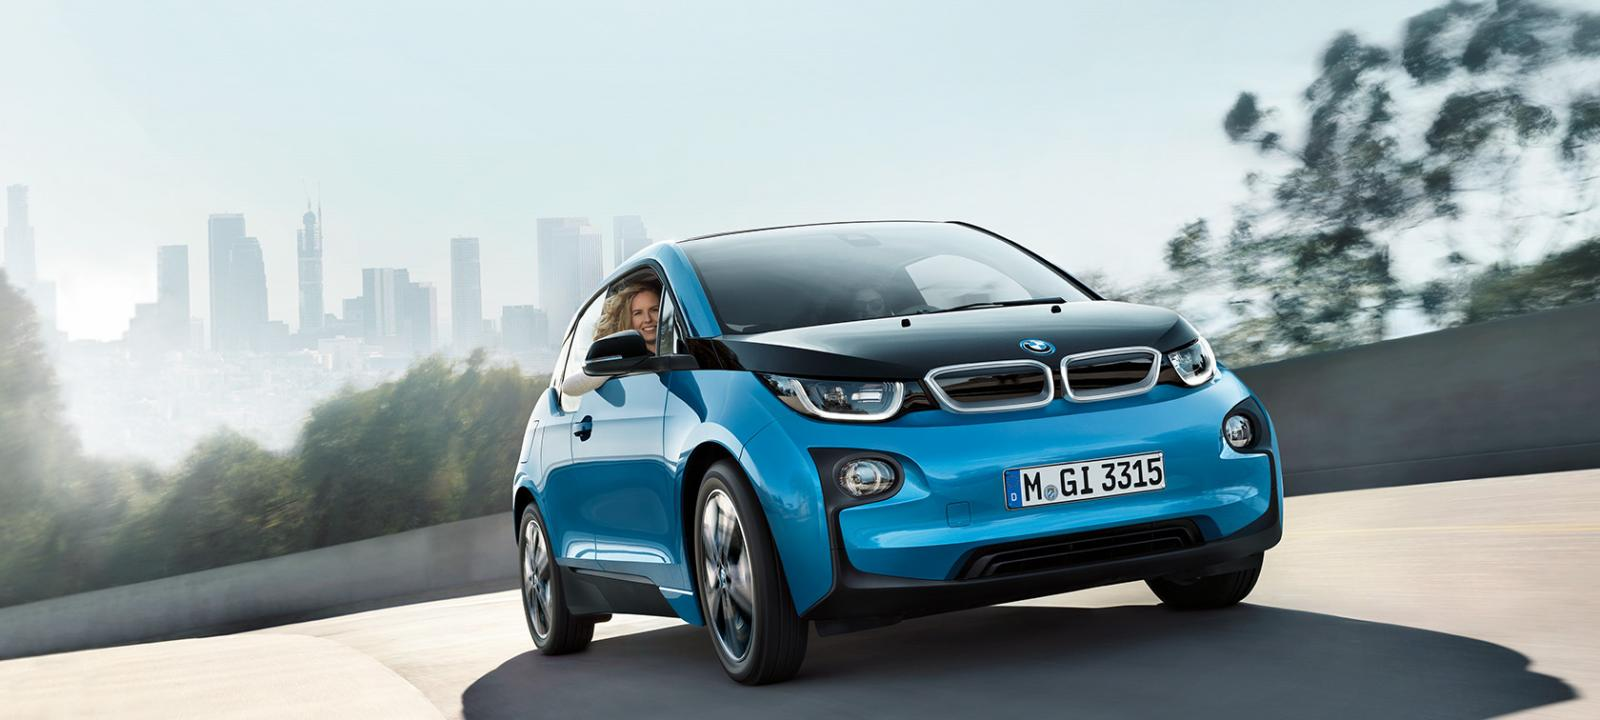 Coches electricos en Mexico BMW i3